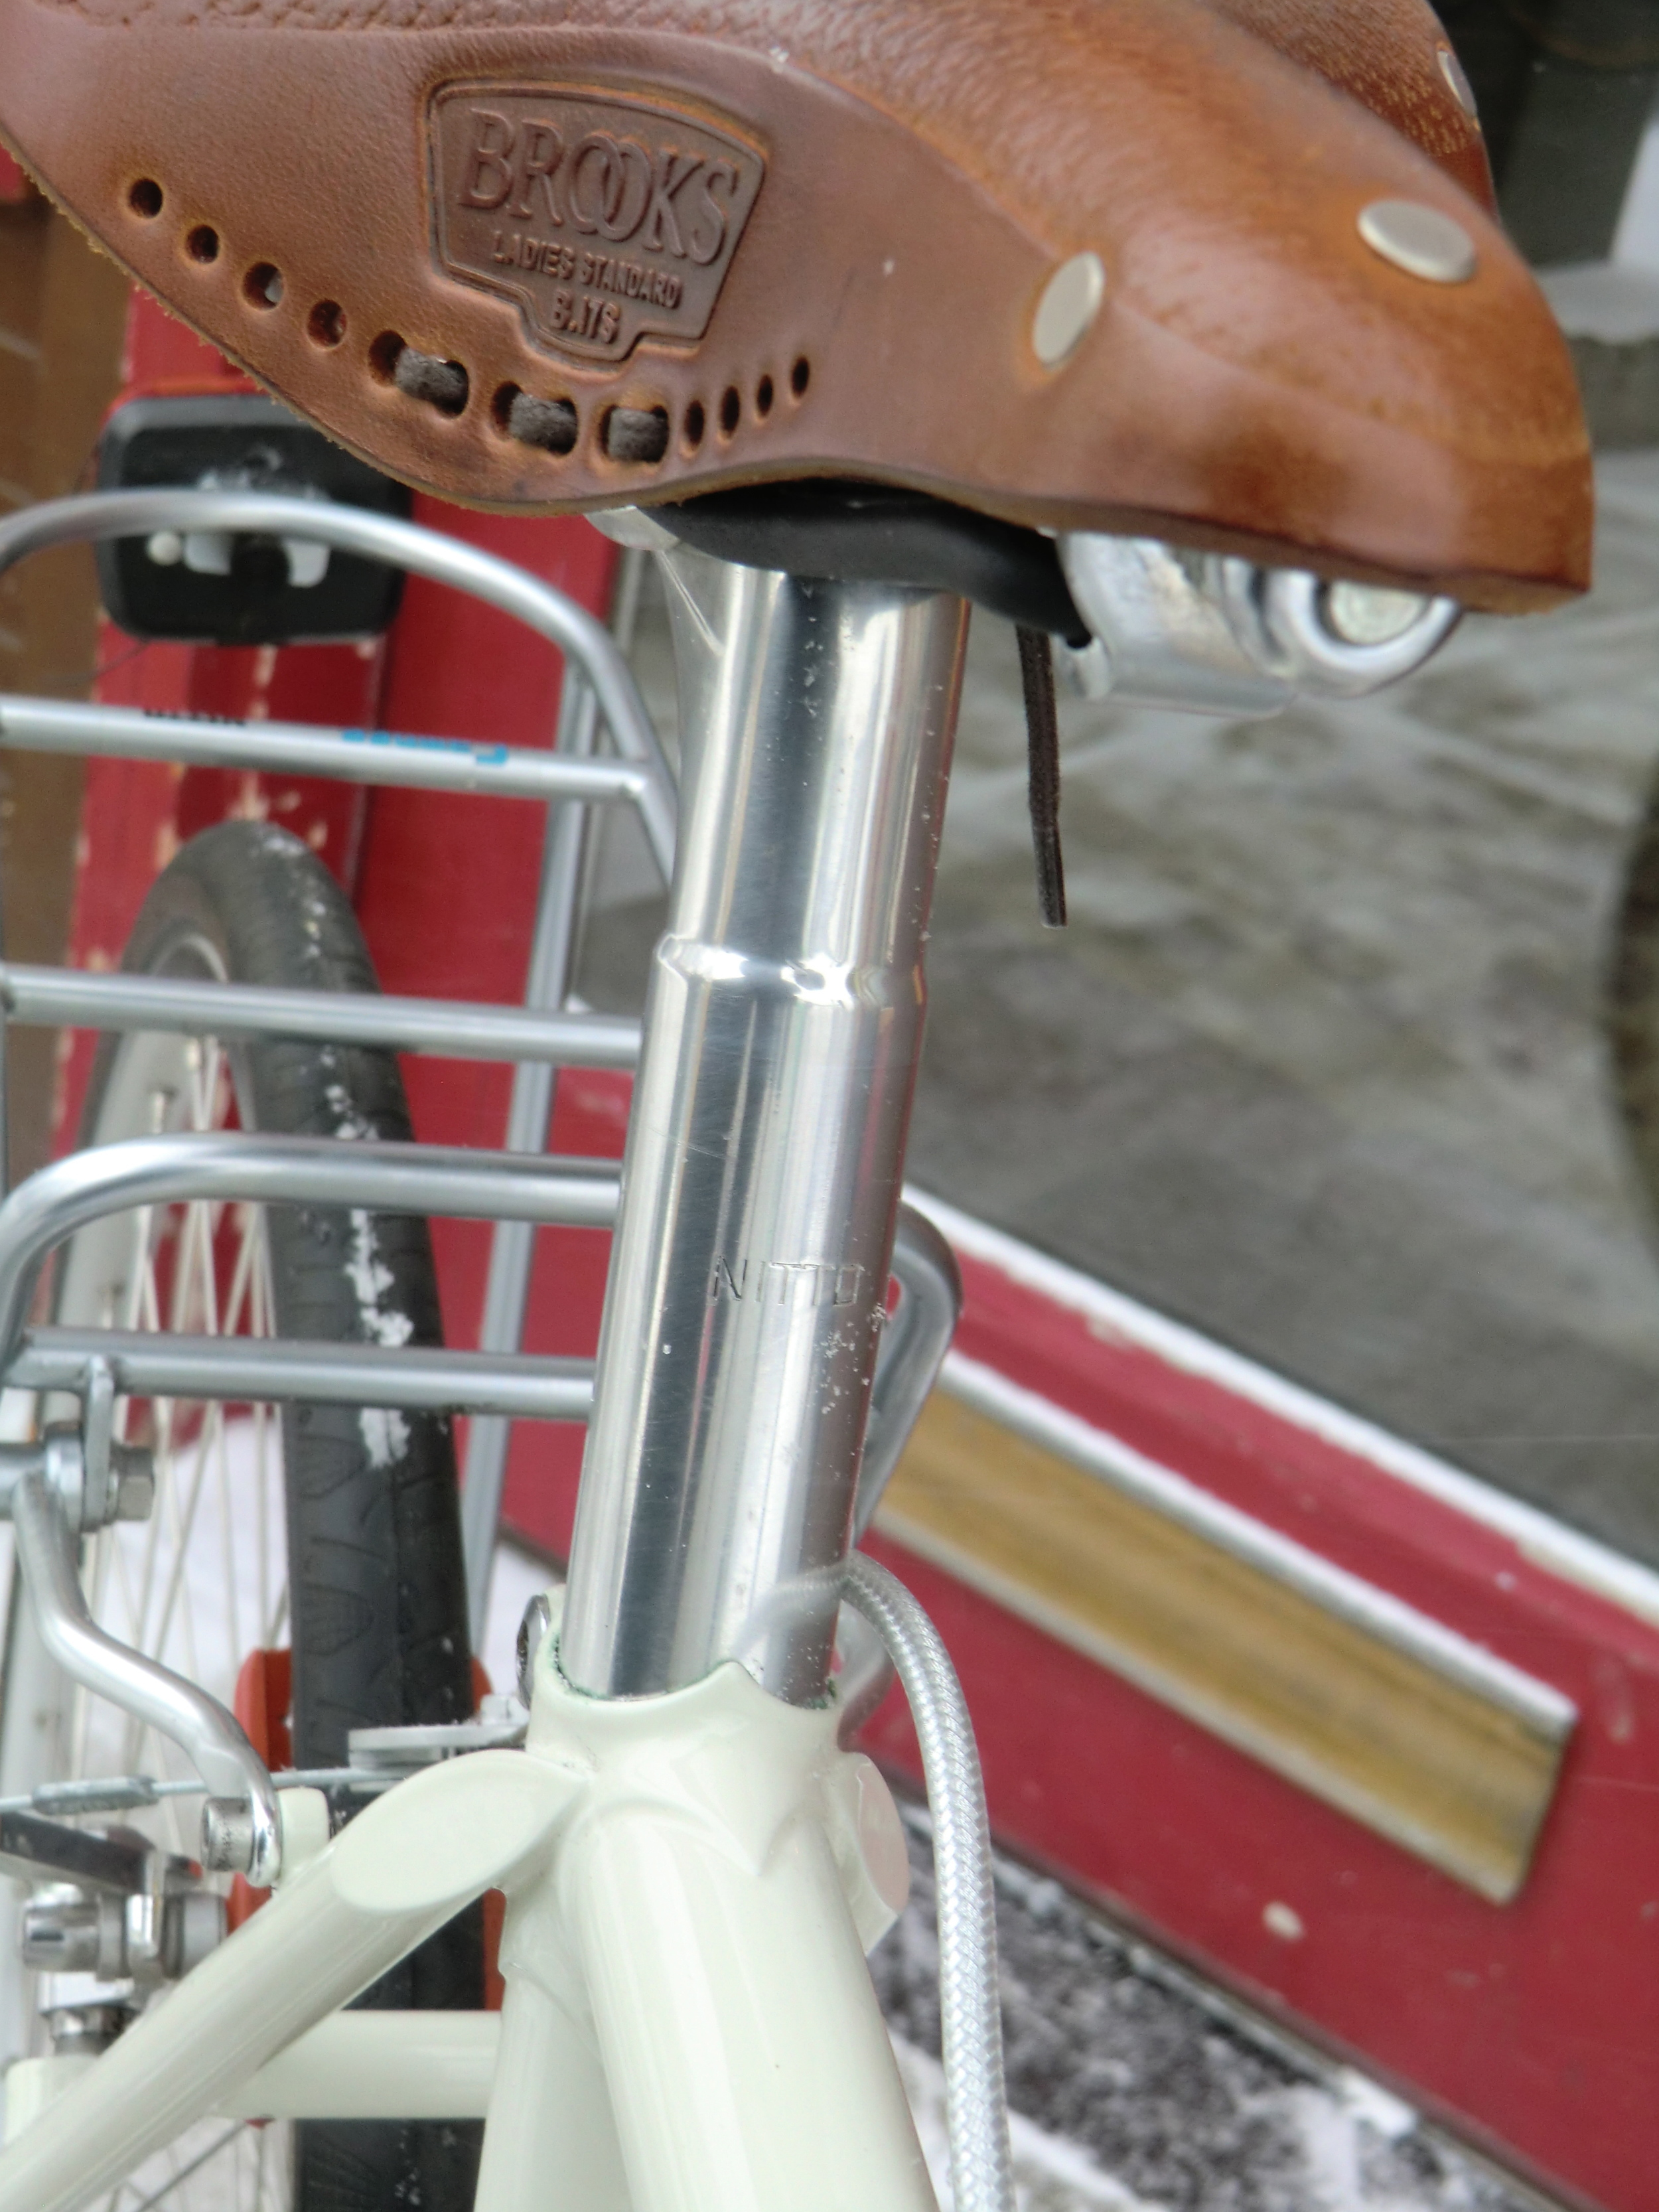 NITTO seatpost, one owner went with a Brook's English Leather saddle (Flyer, Aged Leather)